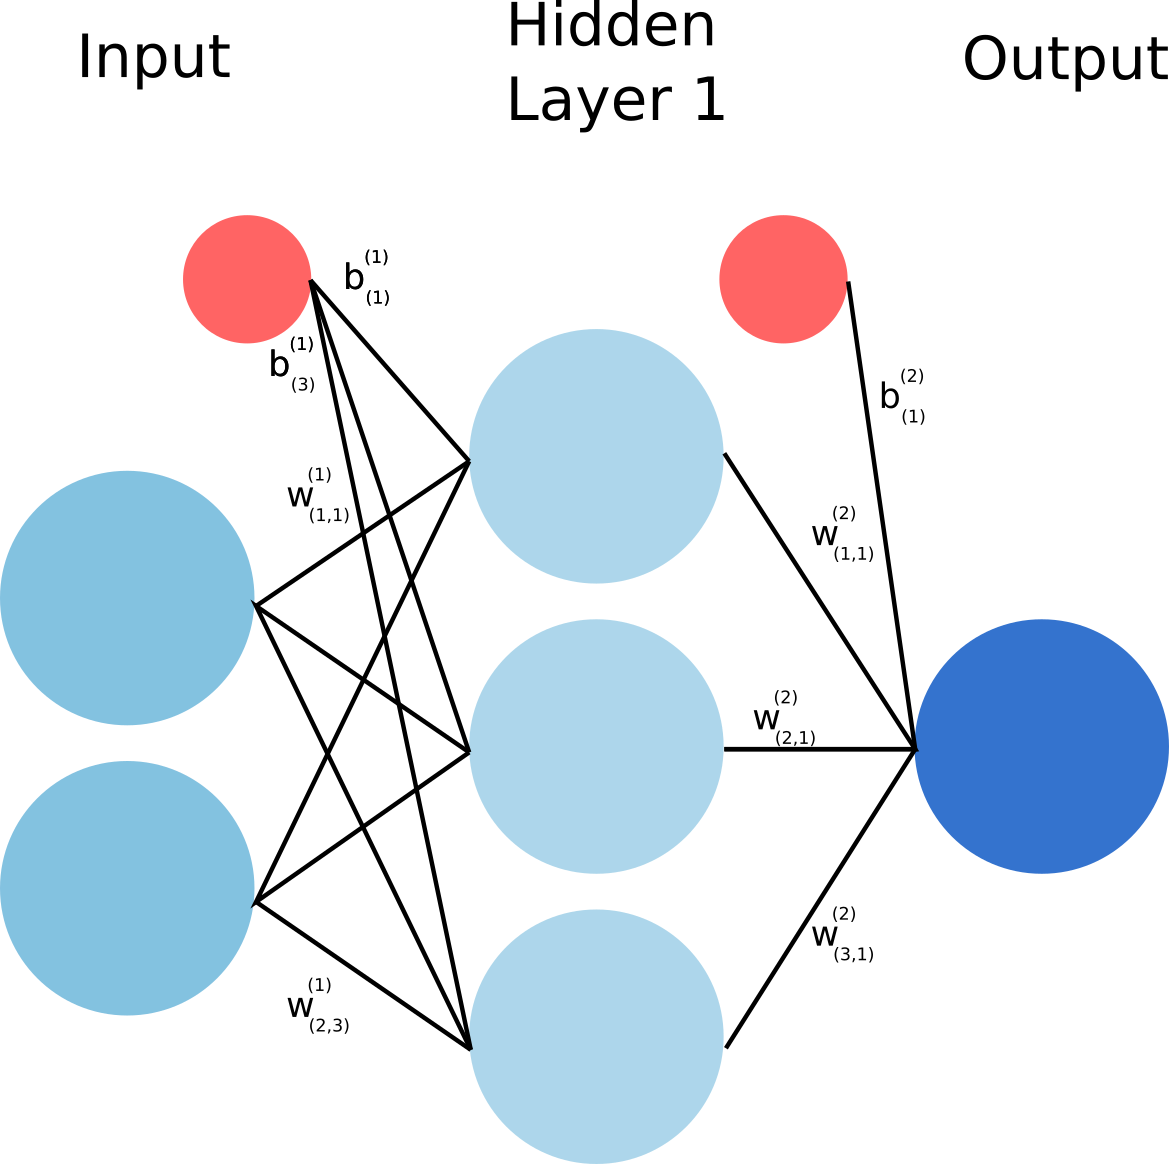 The network used for this classification task.